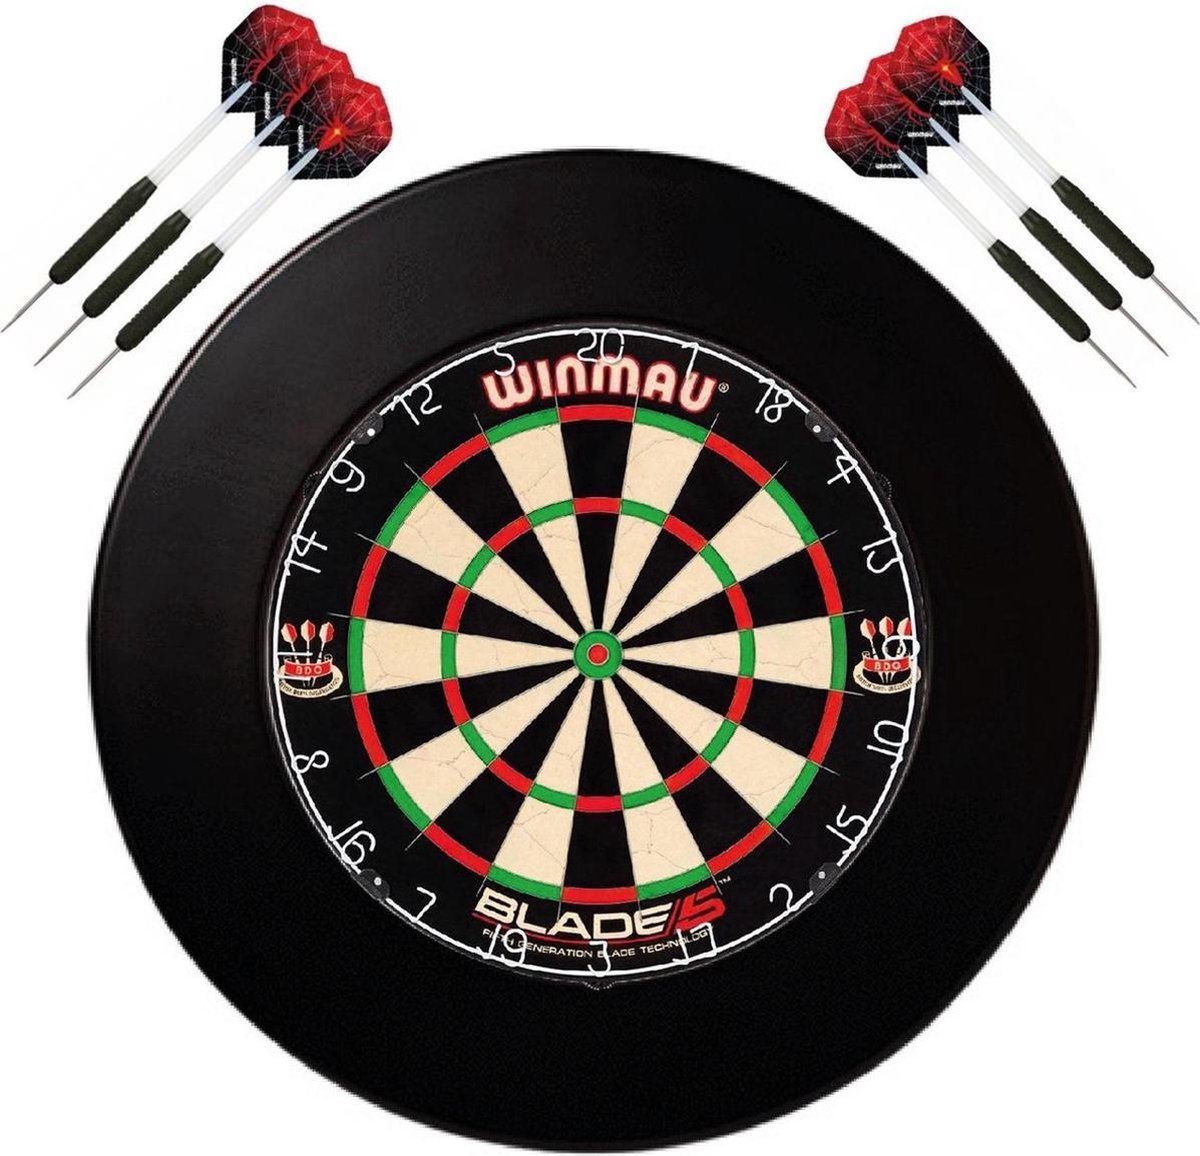 Winmau set - Winmau Blade 5 - dartbord - plus surround ring zwart - plus 2 sets - dartpijlen